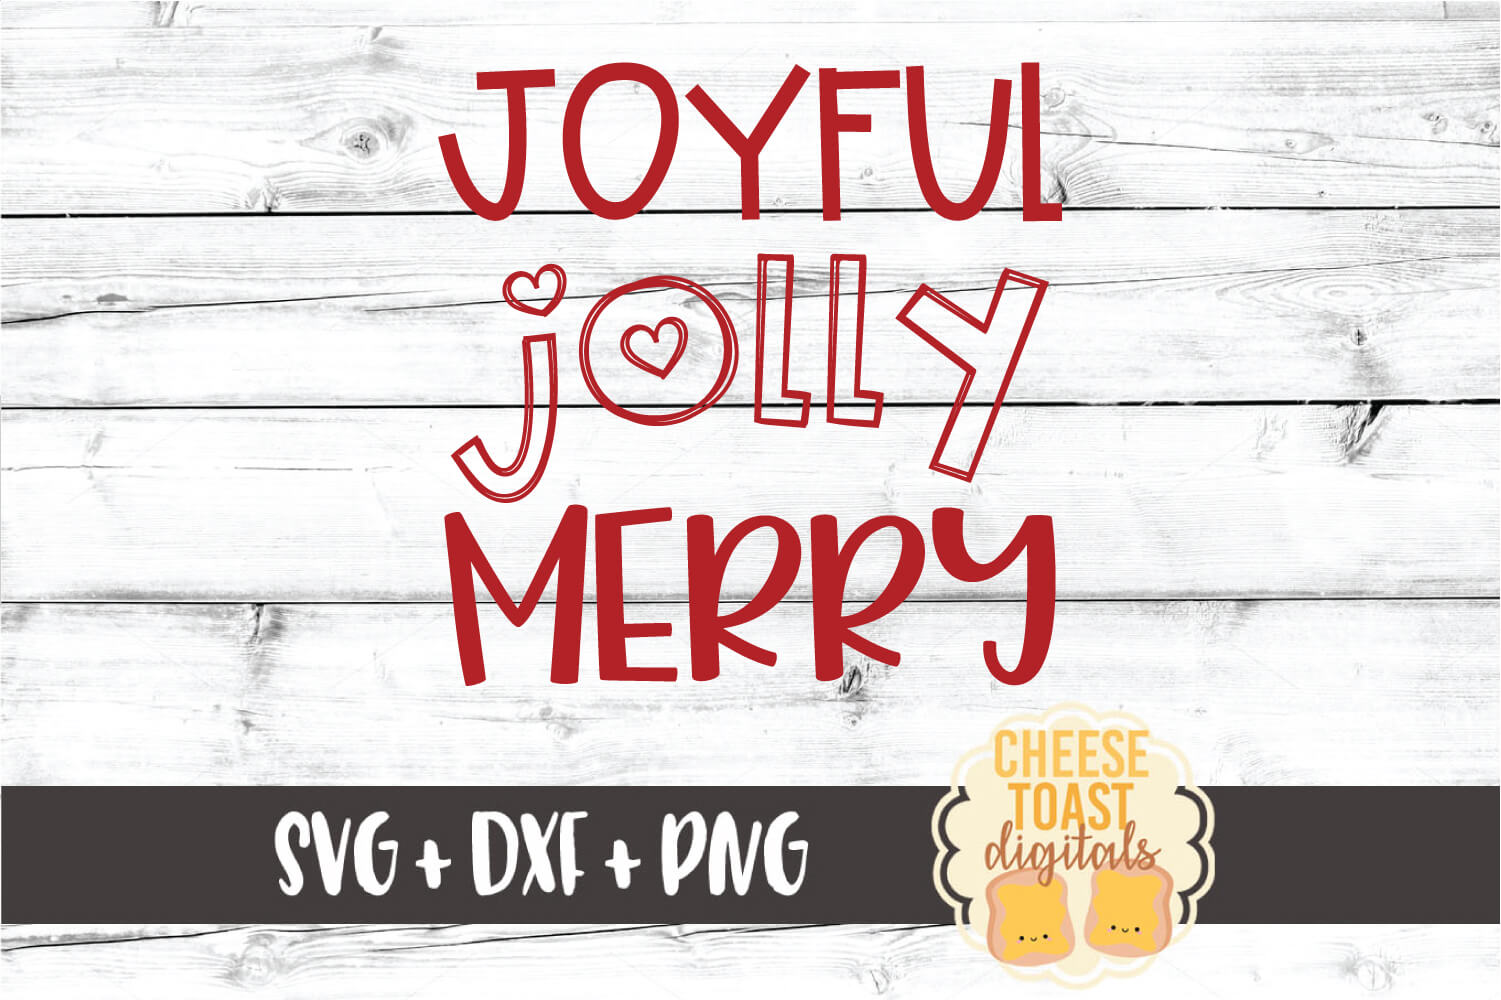 Joyful Jolly Merry - Christmas SVG PNG DXF Cut Files example image 2